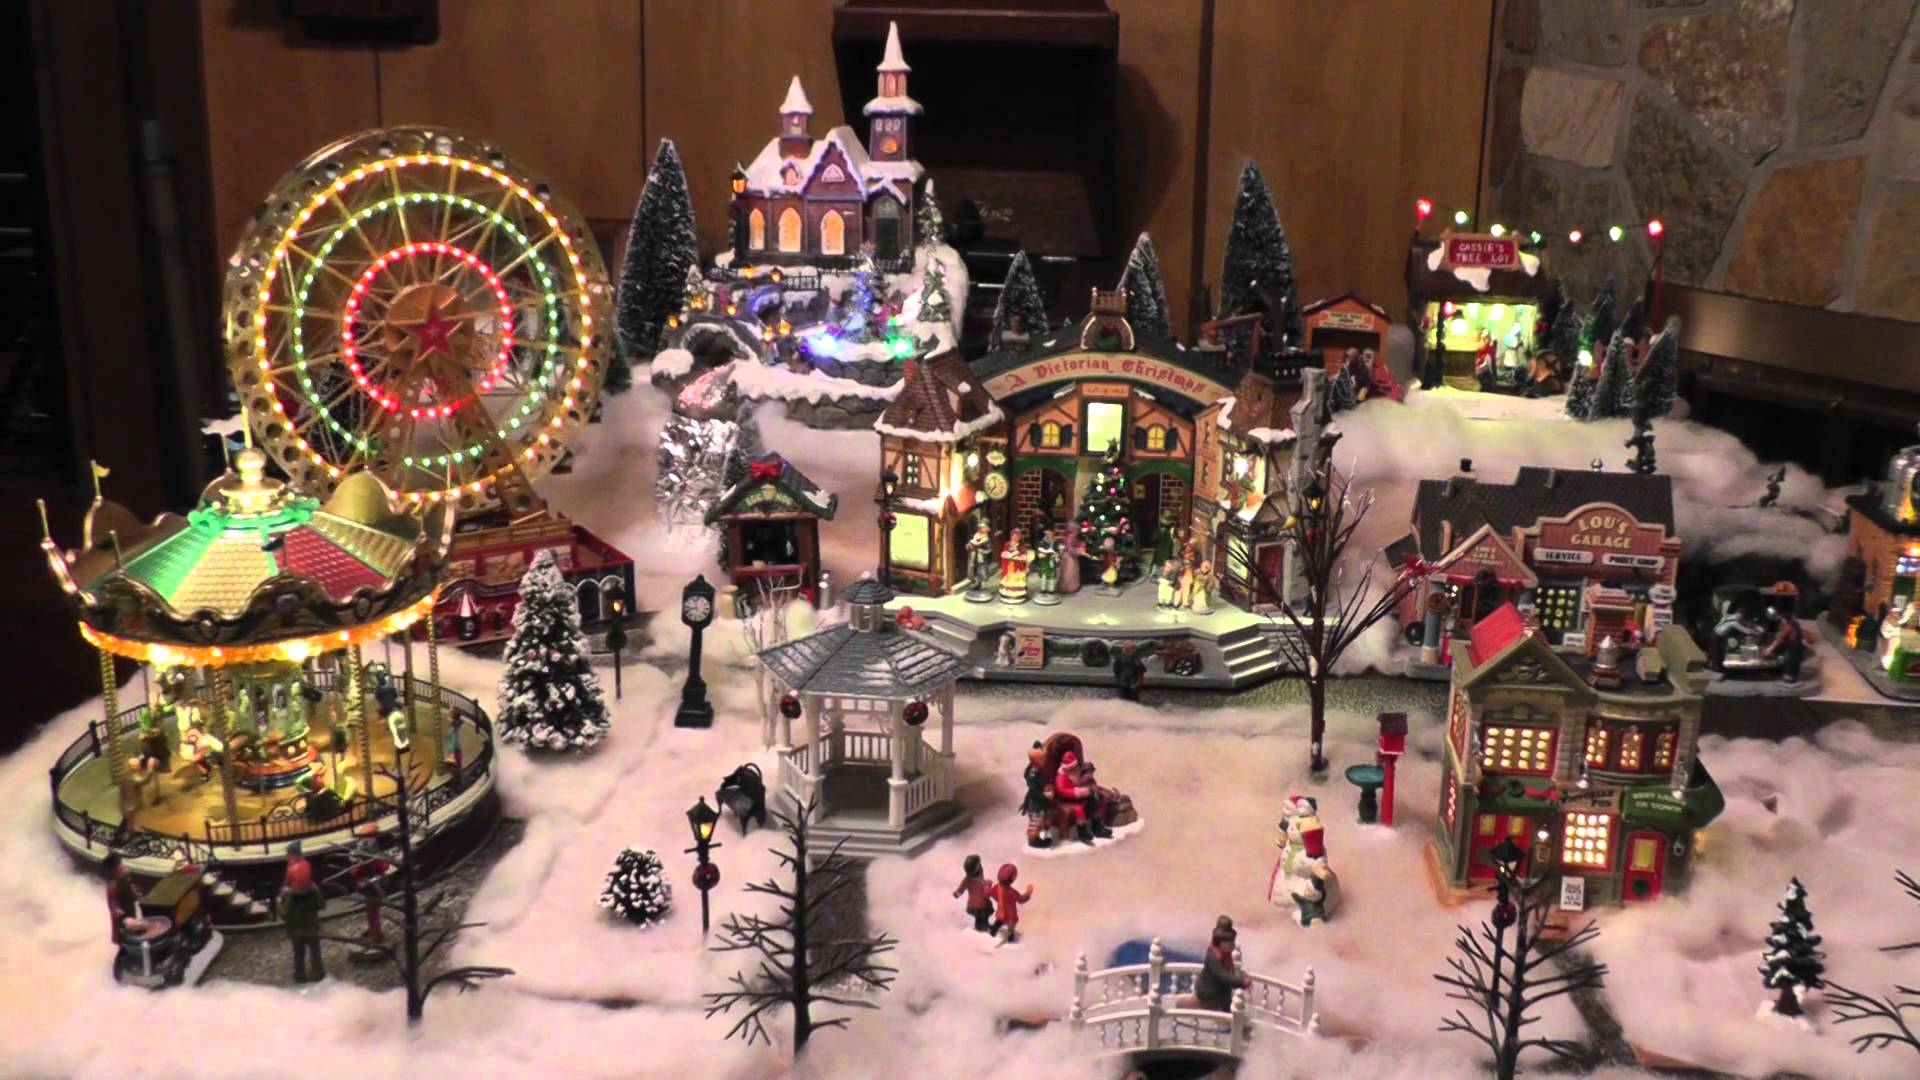 Christmas Villages.Free Photo Christmas Village Village Winter Object